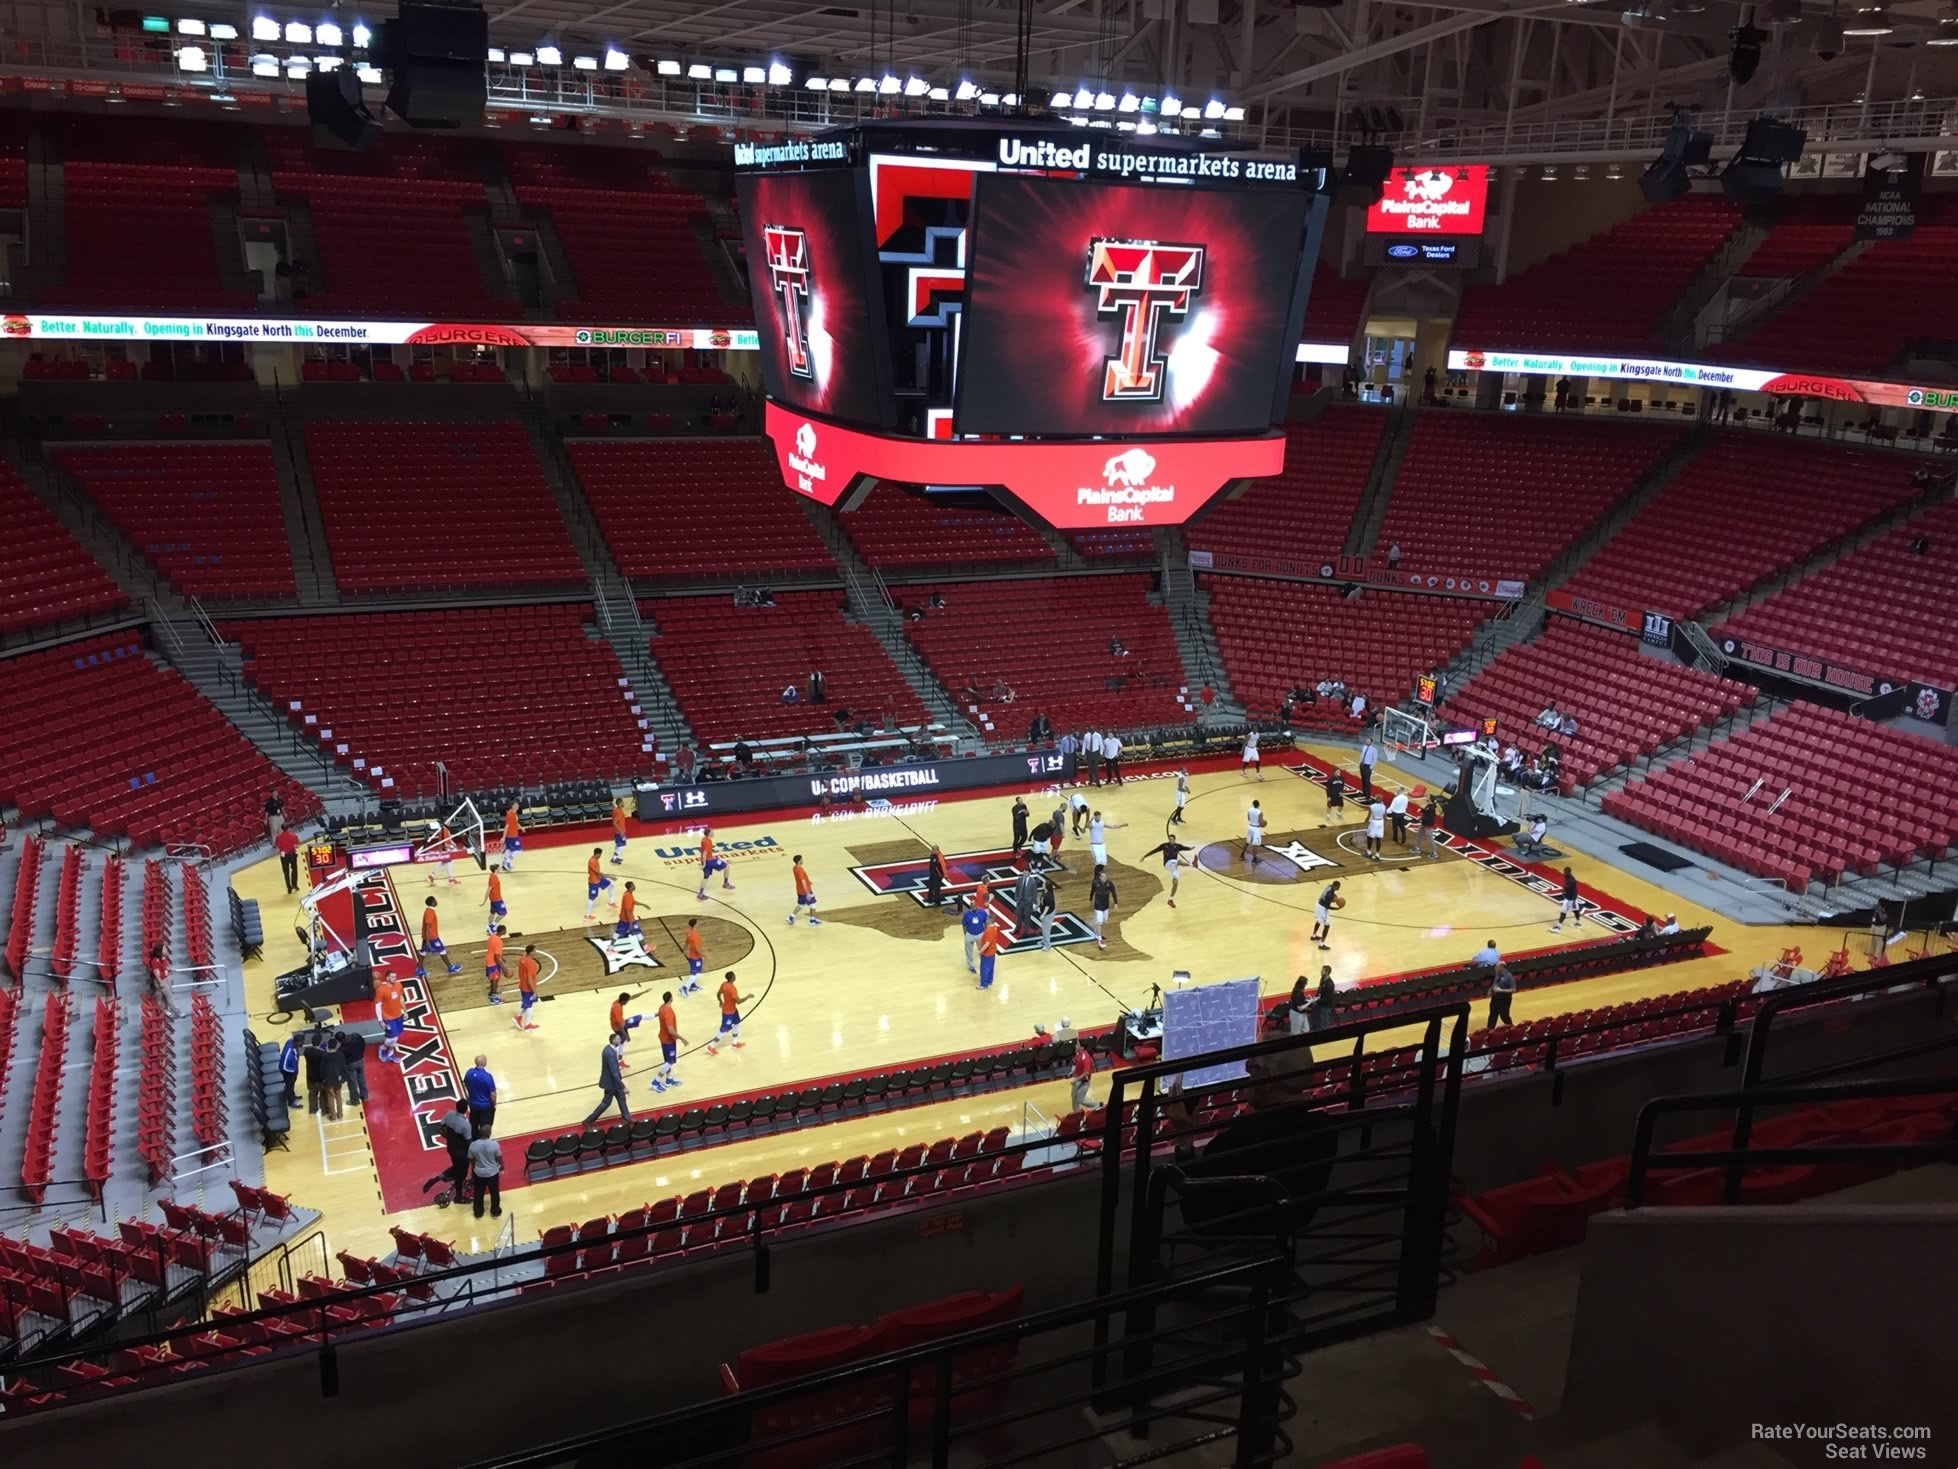 Section 203 at United Supermarkets Arena - RateYourSeats.com